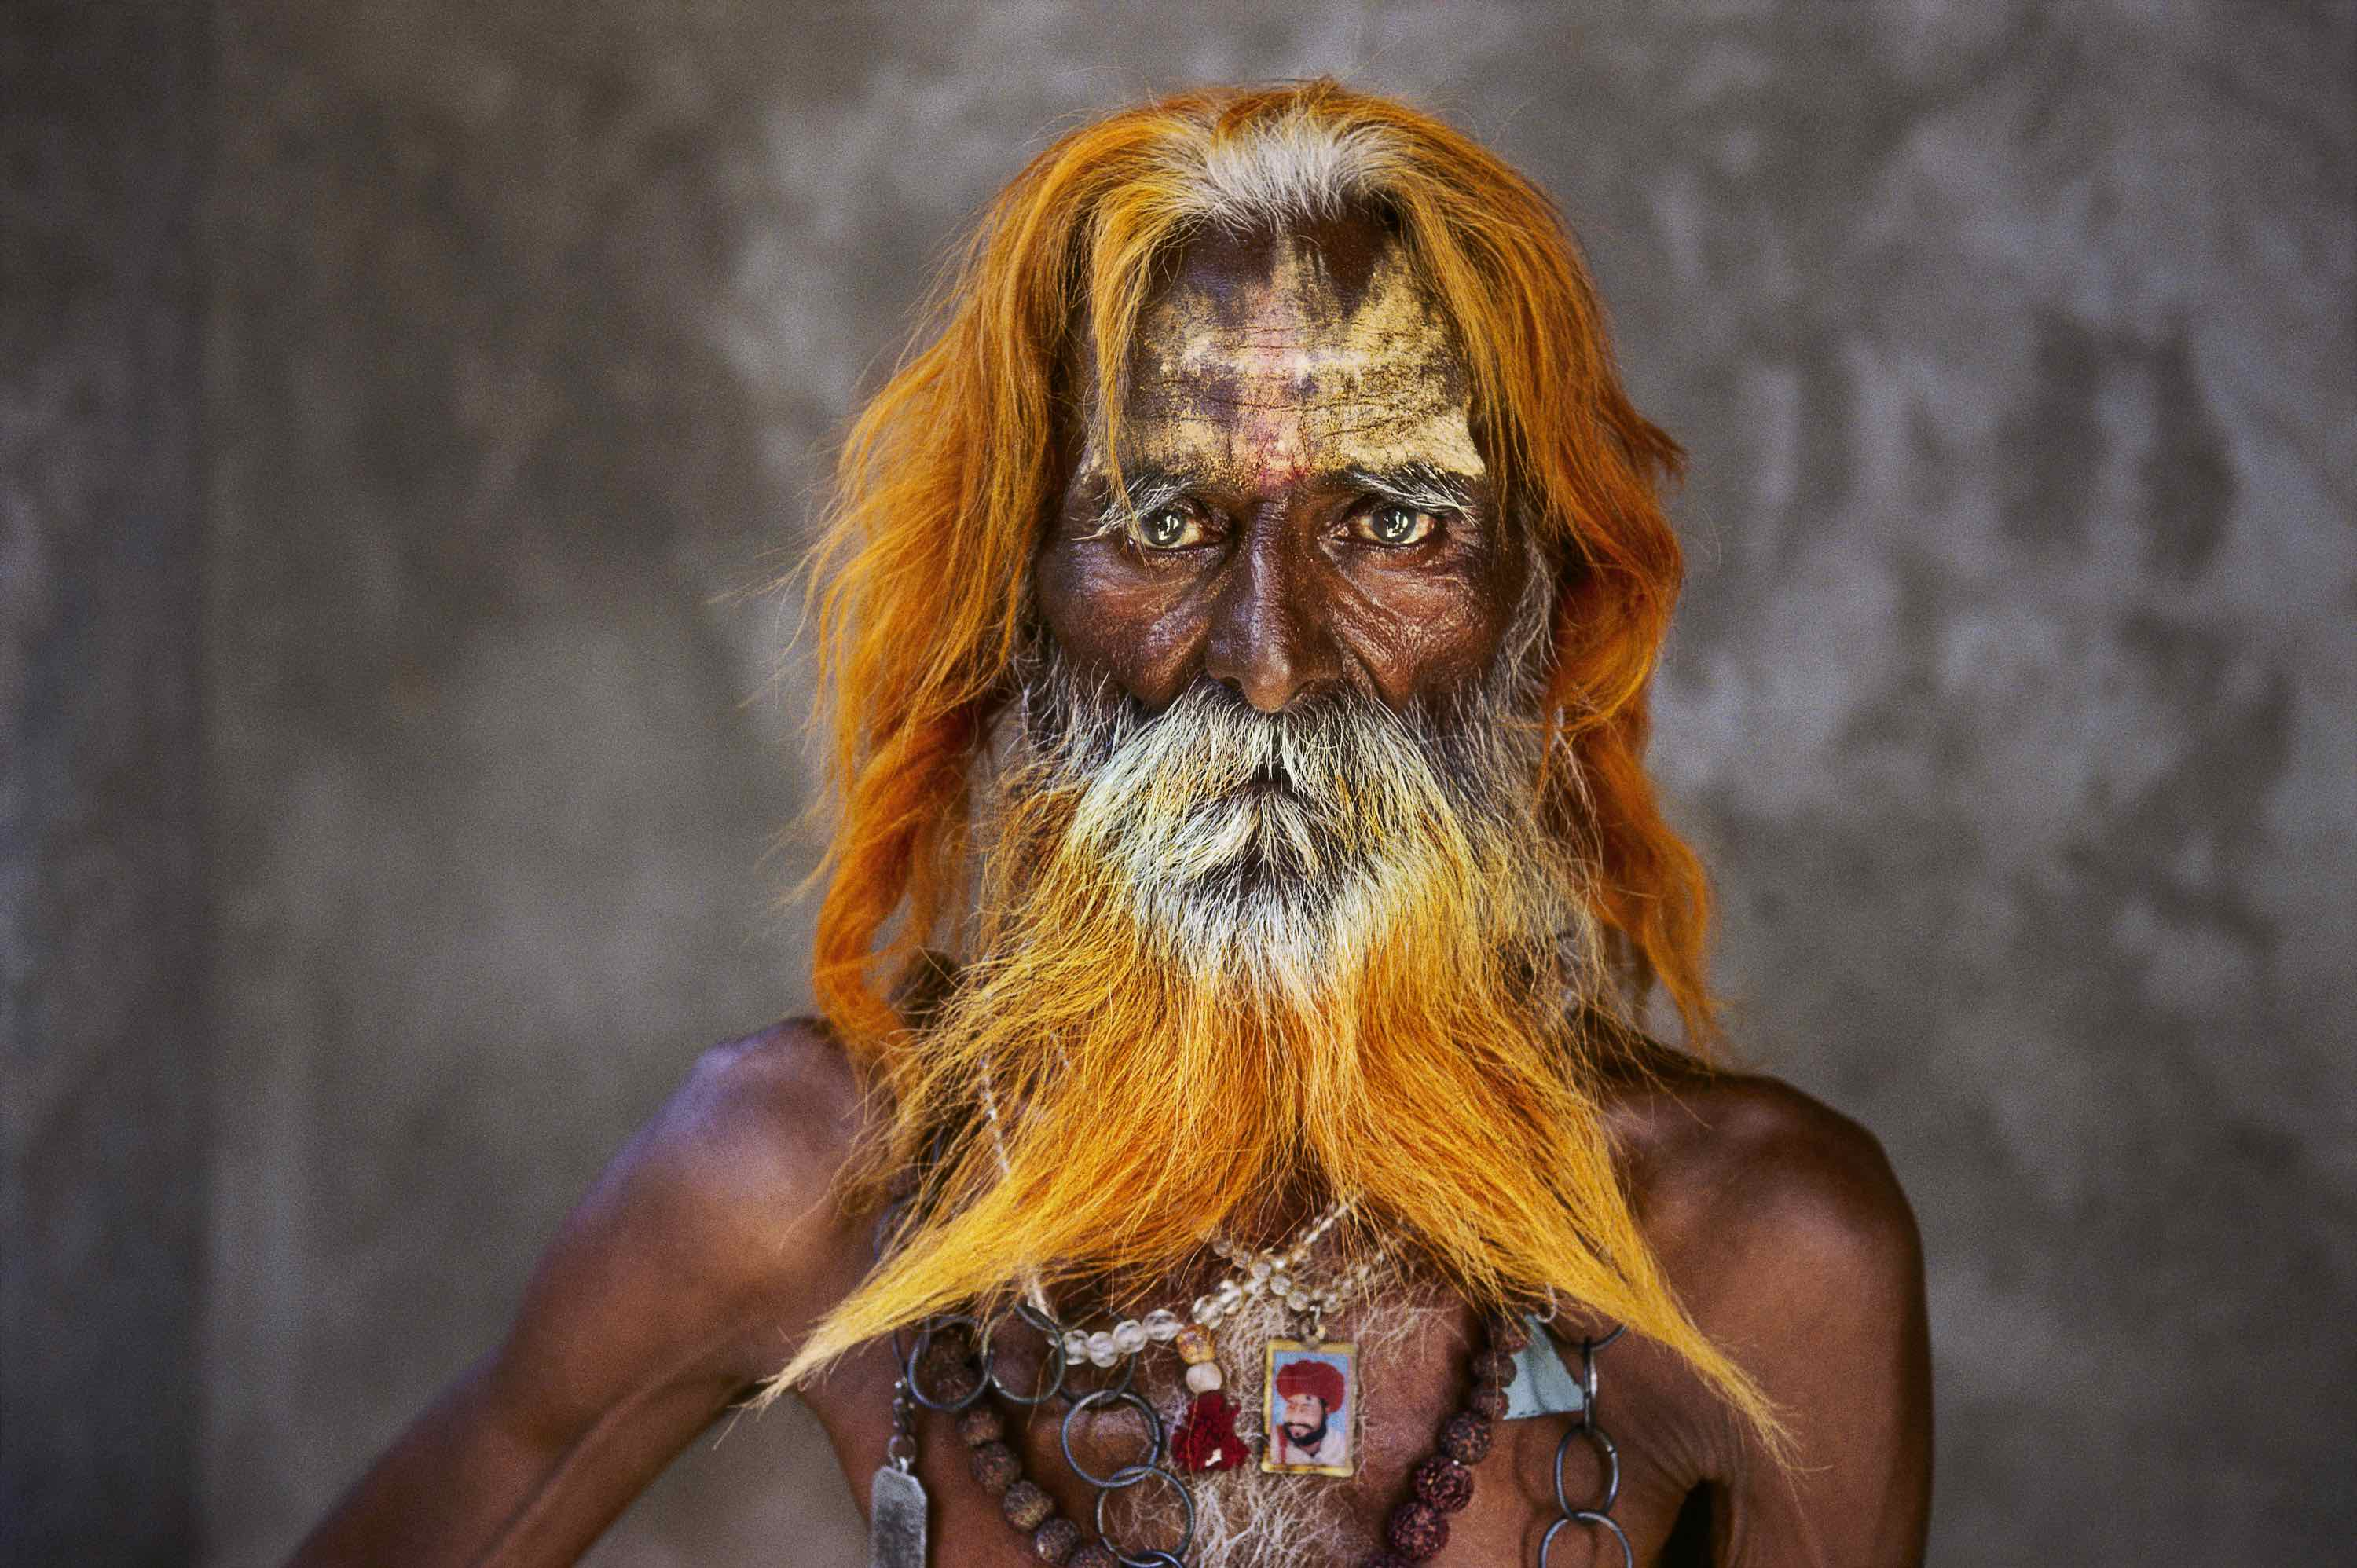 Tribu Rabari, Rajasthan, India, 2010 - Photo : Steve McCurry